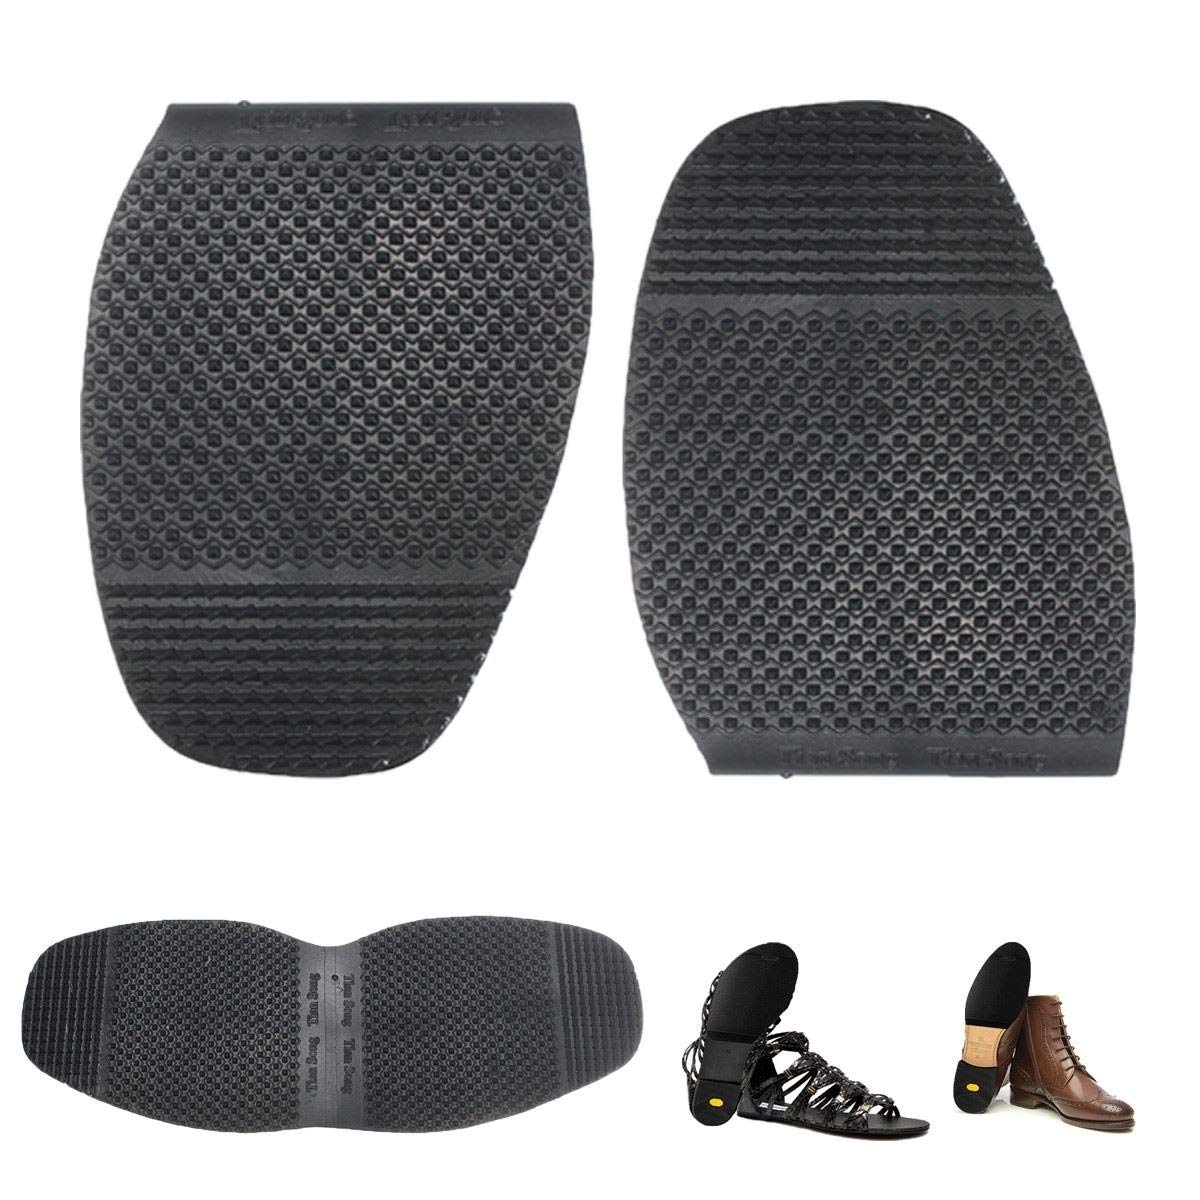 Gold Happy 2 in 1 Rubber Men's Soltrack DIY Stick On Soles, Heel Shoe Repair Anti Slip Grip-Rubber Pad Shoes Cushions